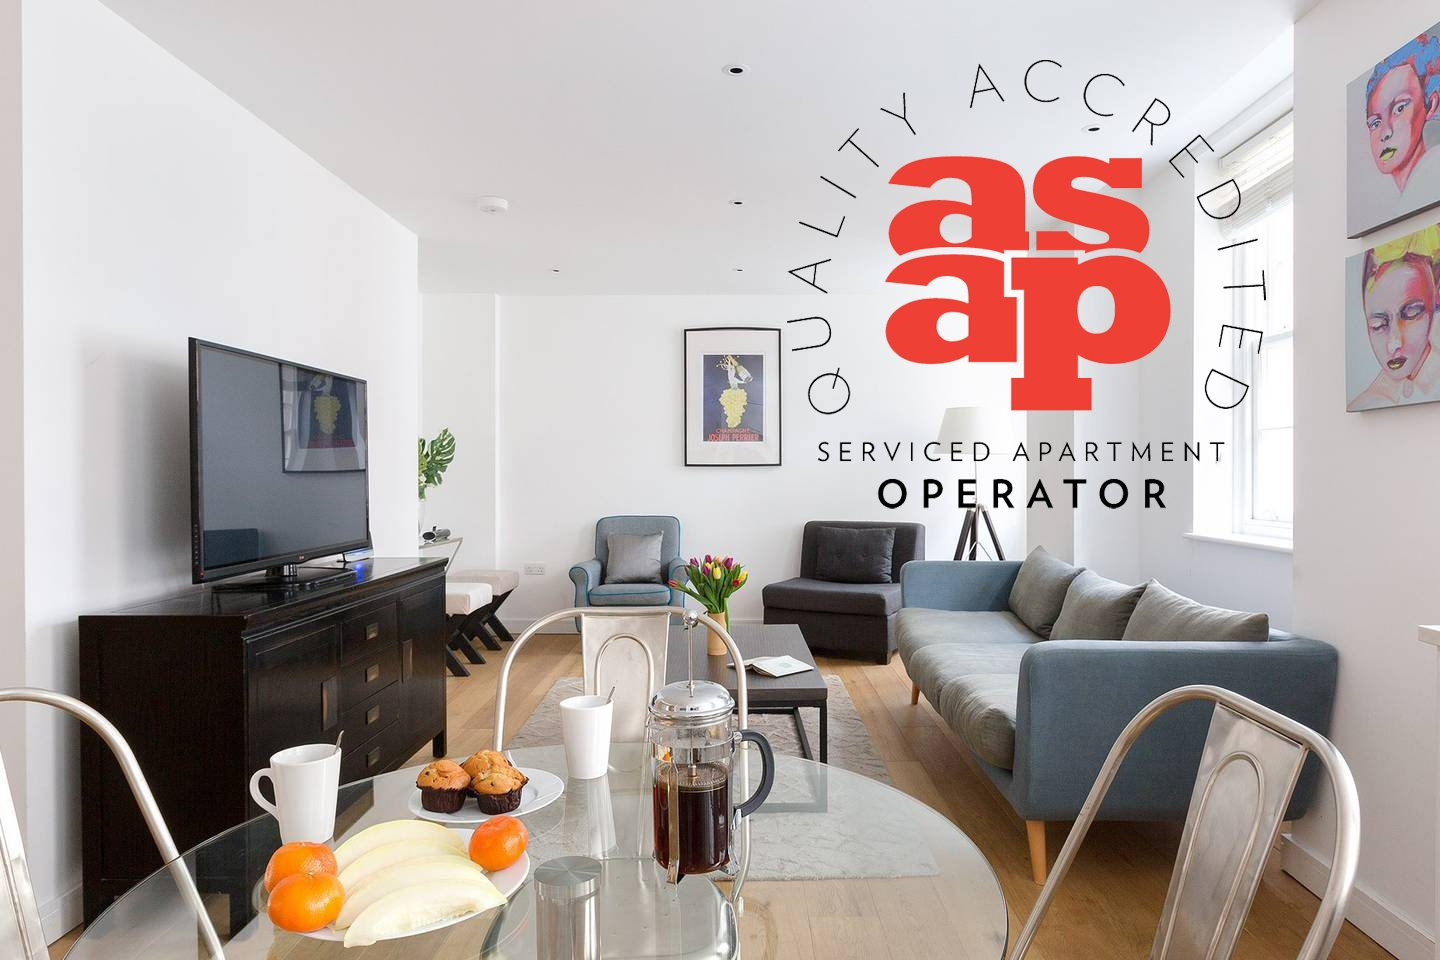 Asap Quality Accredited Serviced Apartments London Corporate Short Term Rental Accommodation Urban Stay Relocation Business Holiday